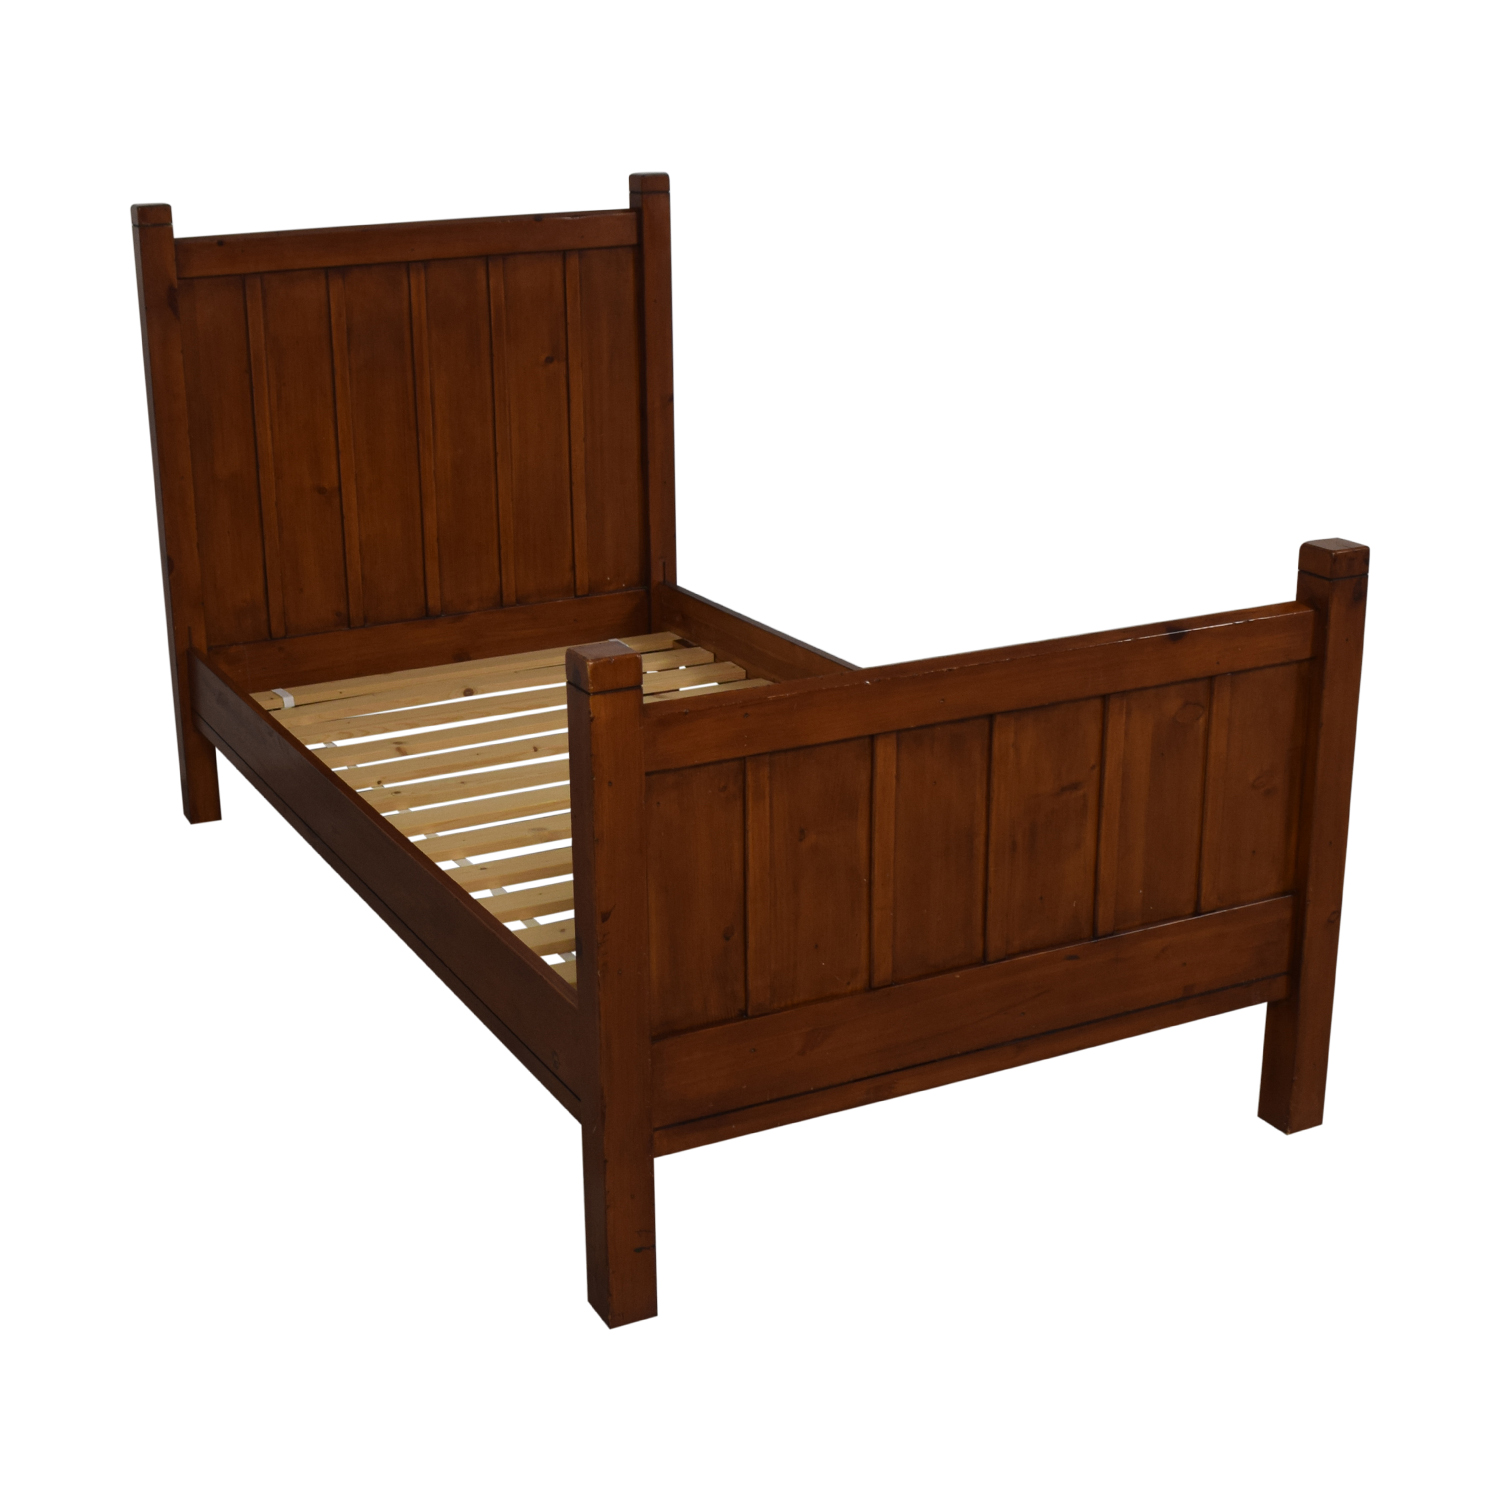 62 Off Pottery Barn Pottery Barn Kids Camp Twin Bed Beds